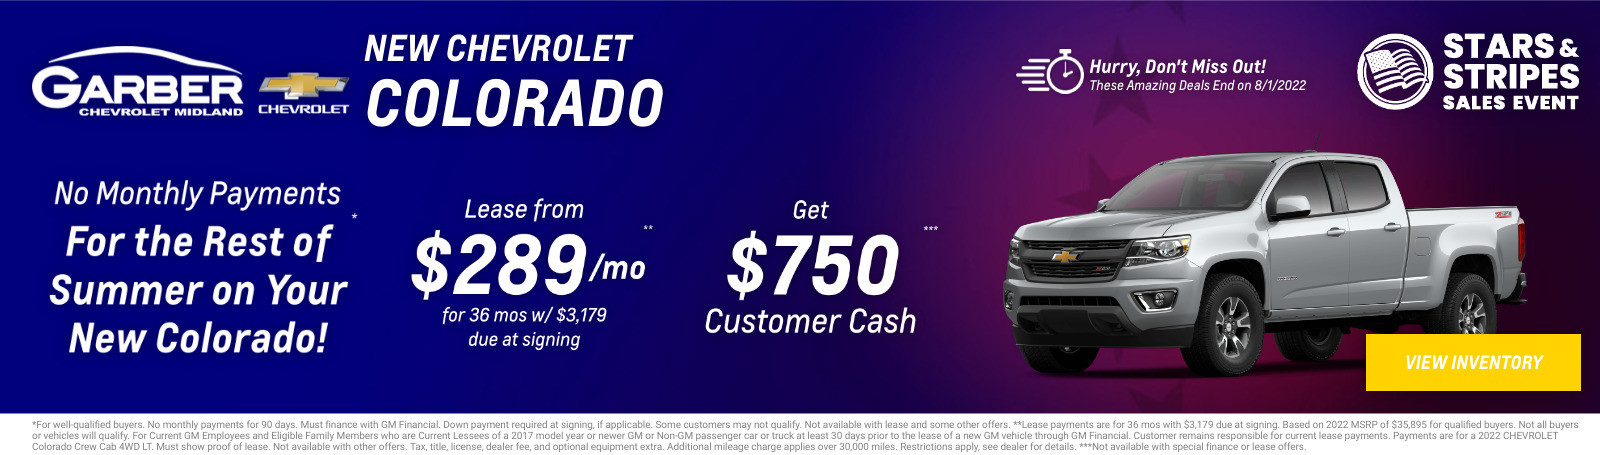 New Chevrolet Colorado Current Deals and Offers in Midland, MI